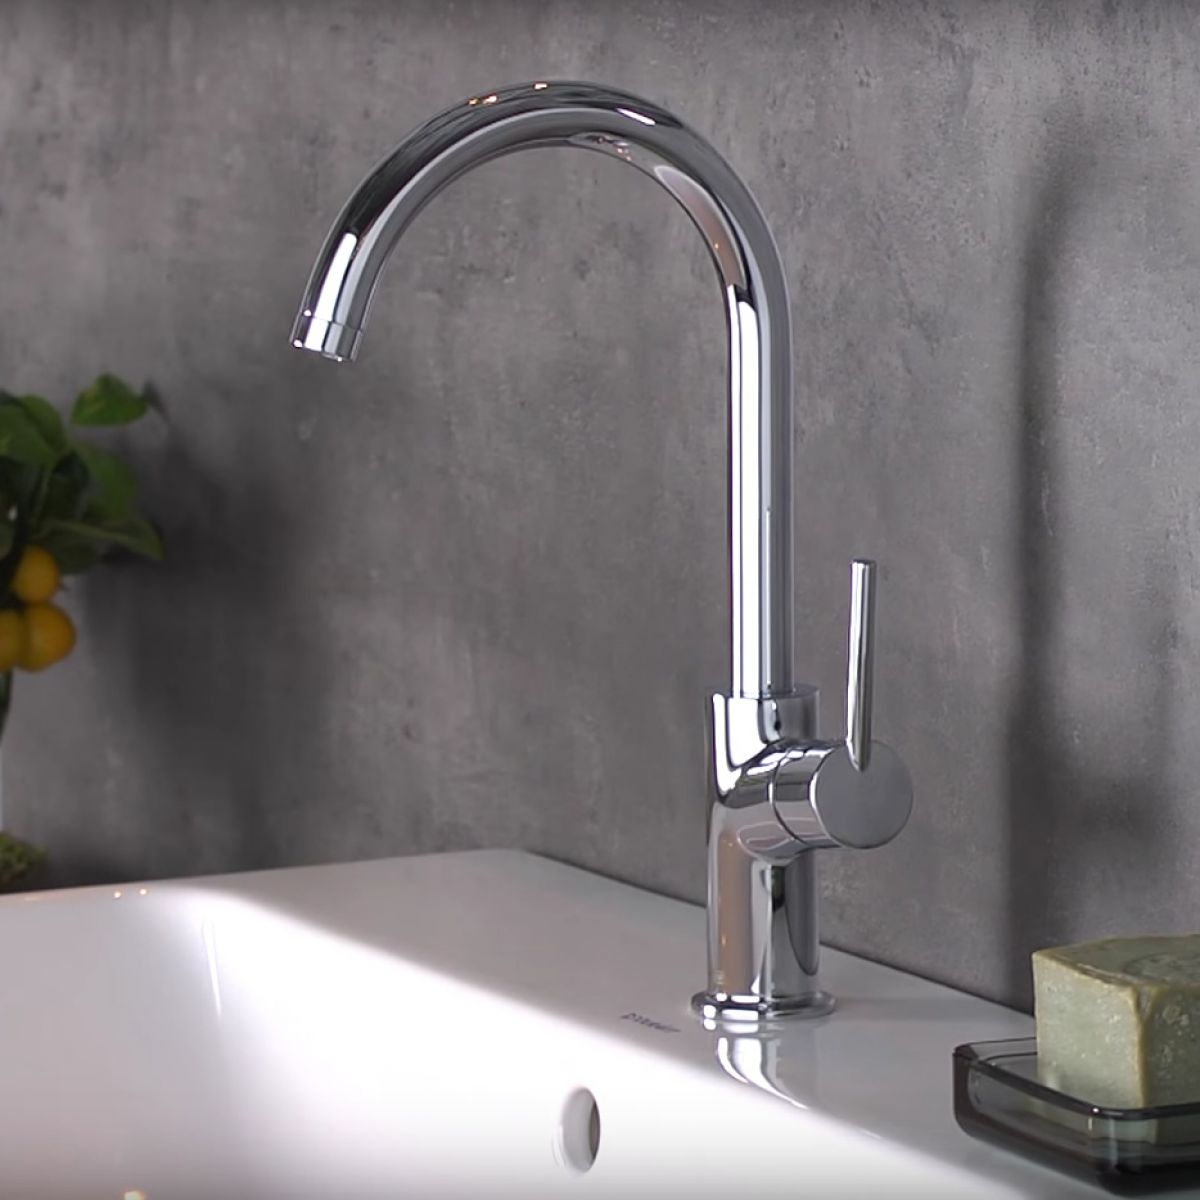 Hansgrohe Talis Basin Mixer 210 With Swivel Spout | Bathrooms Direct ...